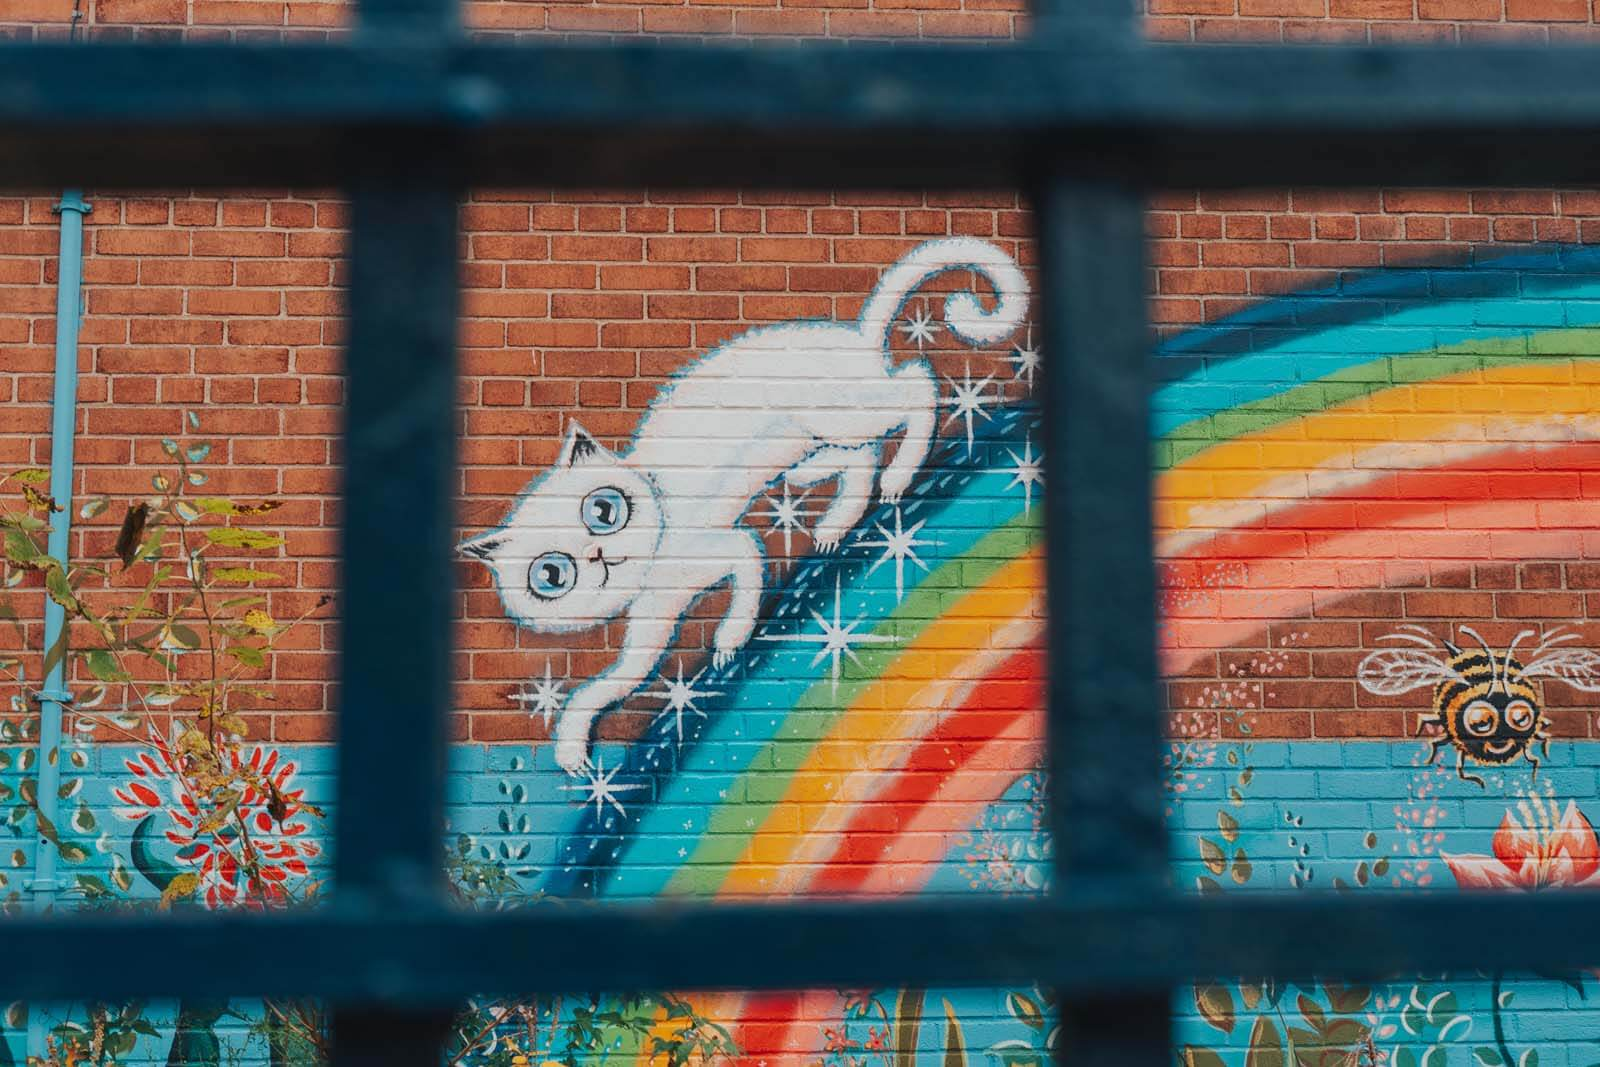 Fun cat mural at PS 9 in Prospect Heights Brooklyn on Underhill Avenue